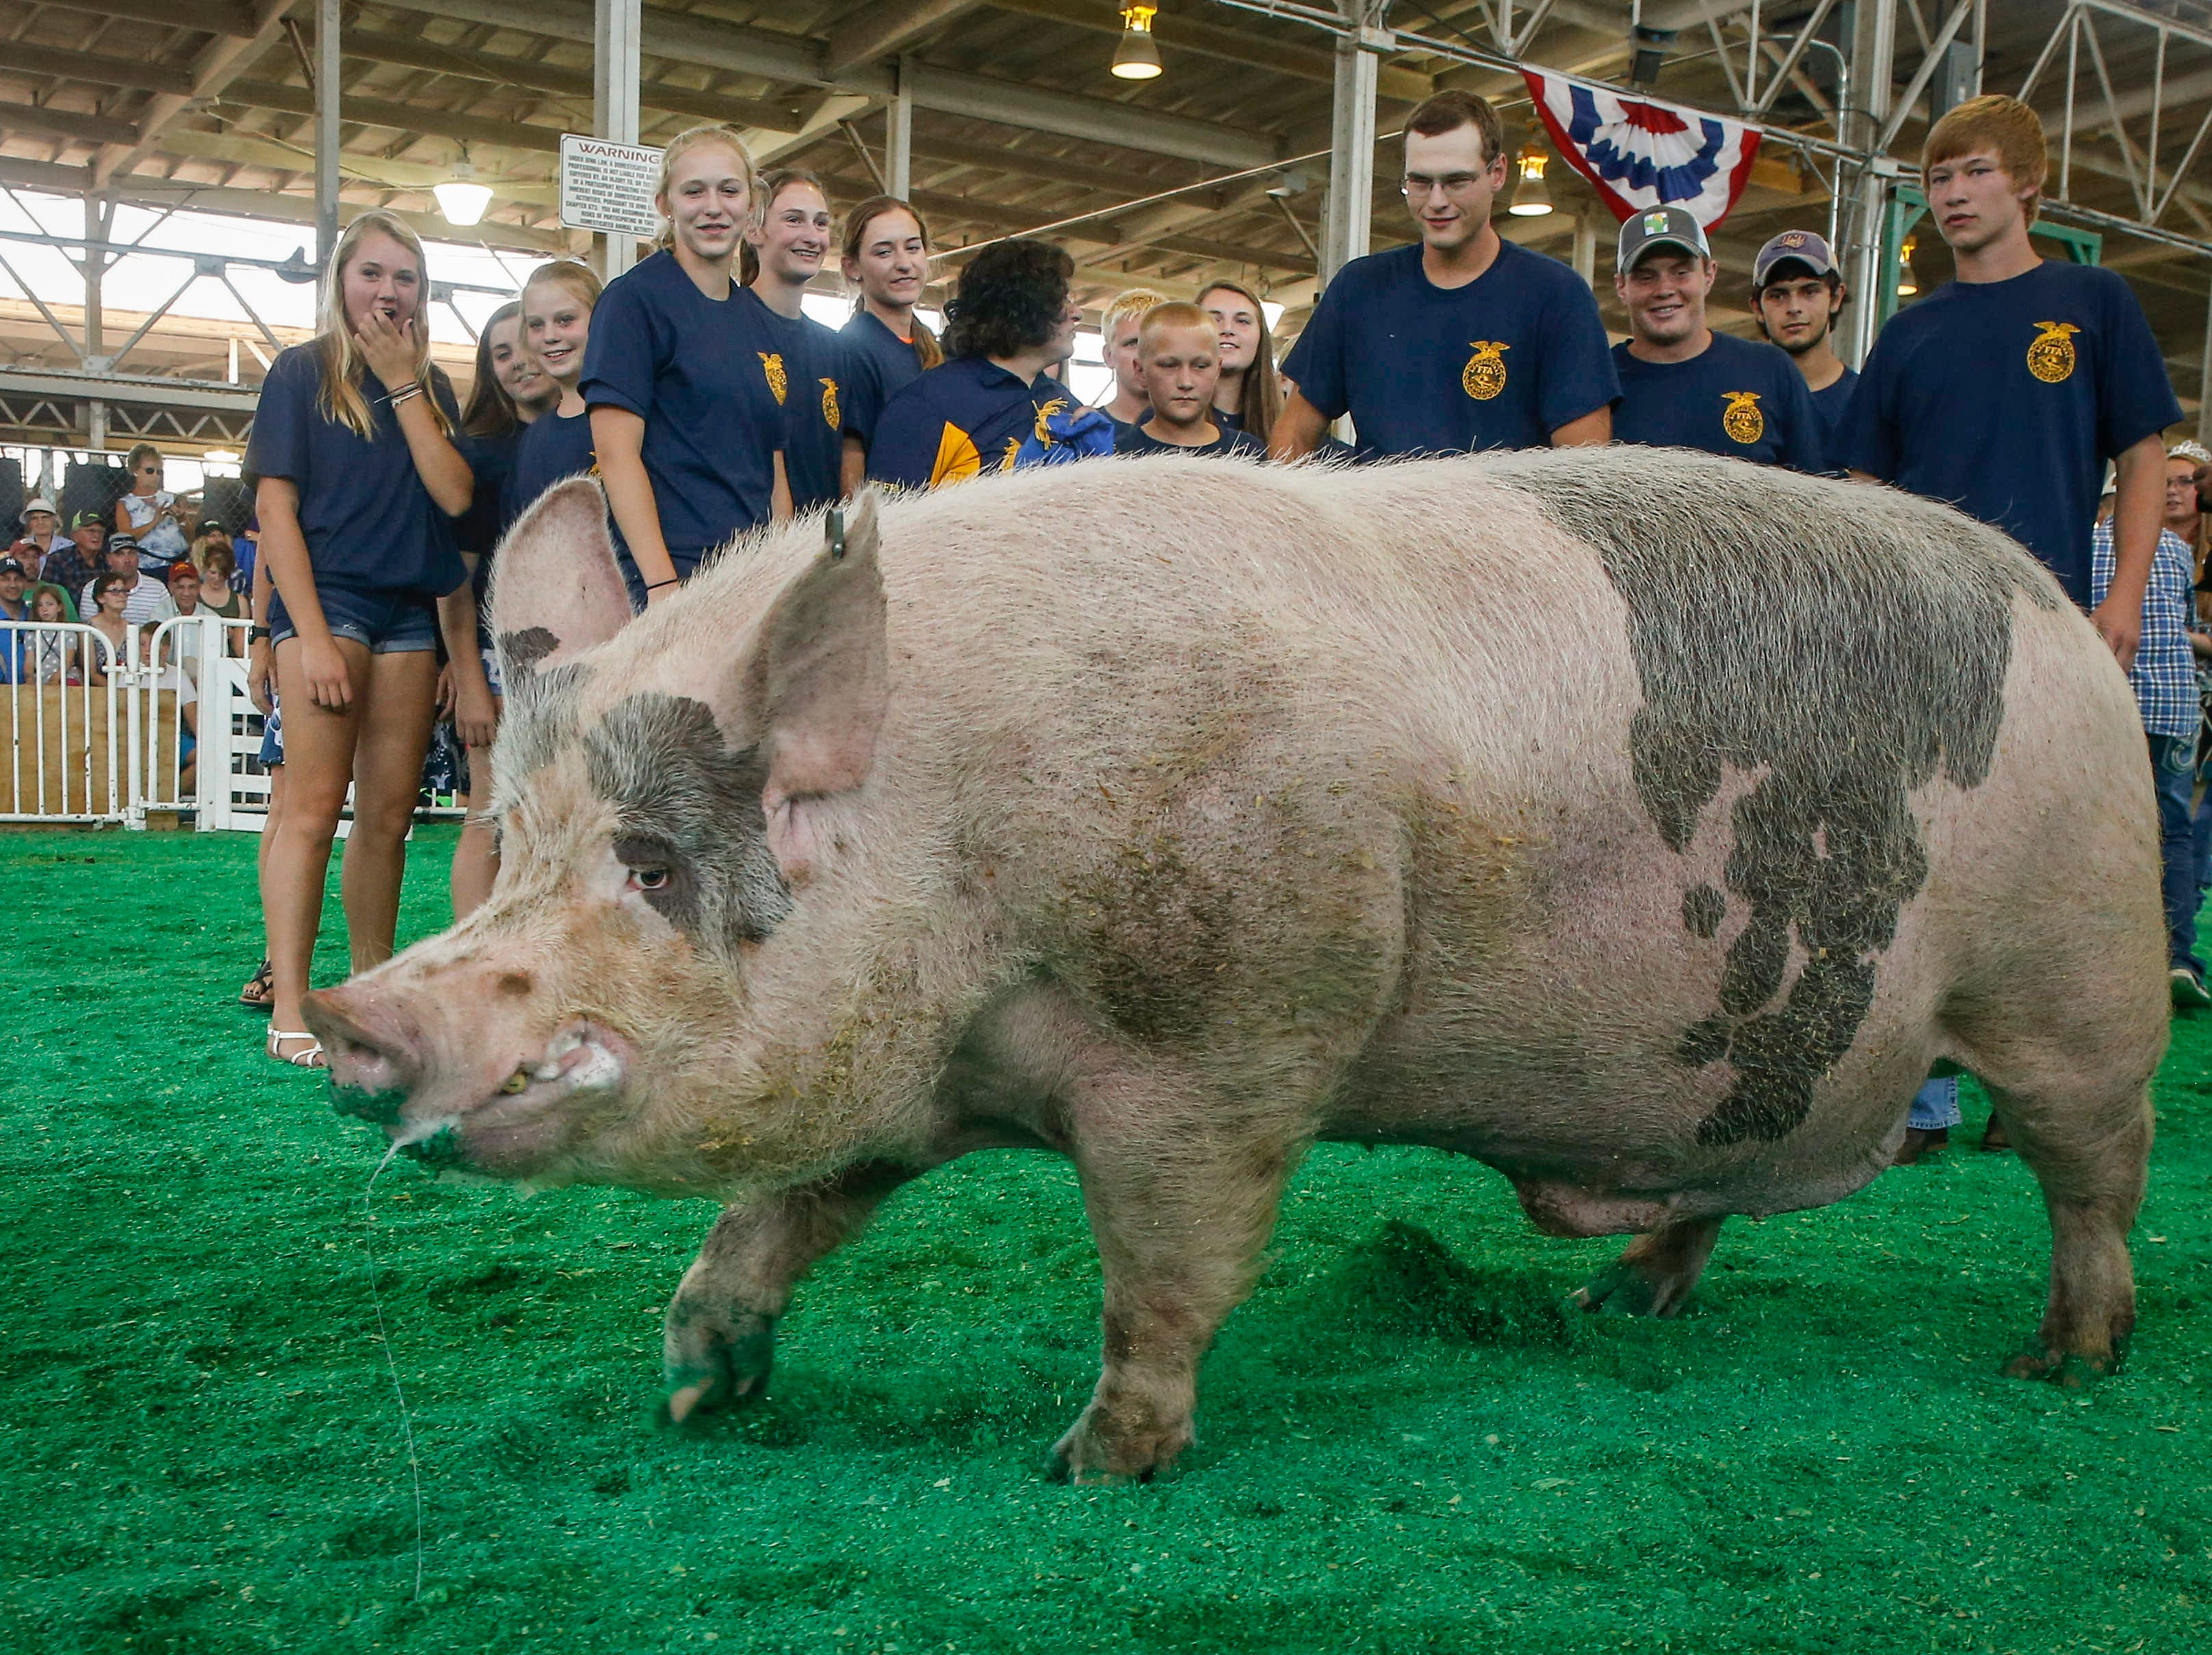 Itty Bitty, a 1,163-pound boar from Manchester, won the 2018 Big Boar contest during the Iowa State Fair in Des Moines.